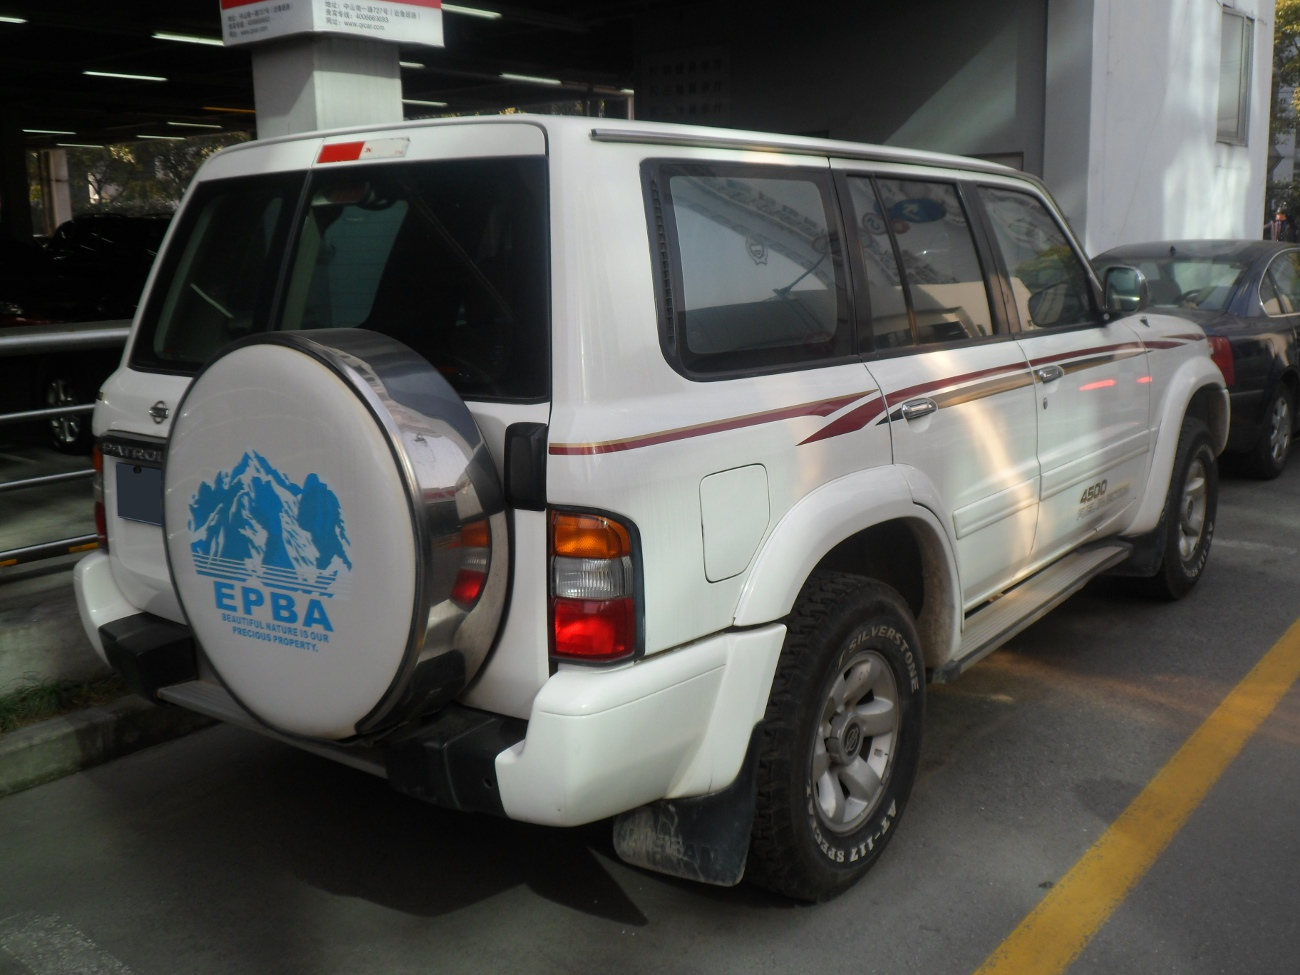 File:Nissan Patrol Y61 LWB 02 China 2013-03-04 JPG - Wikimedia Commons